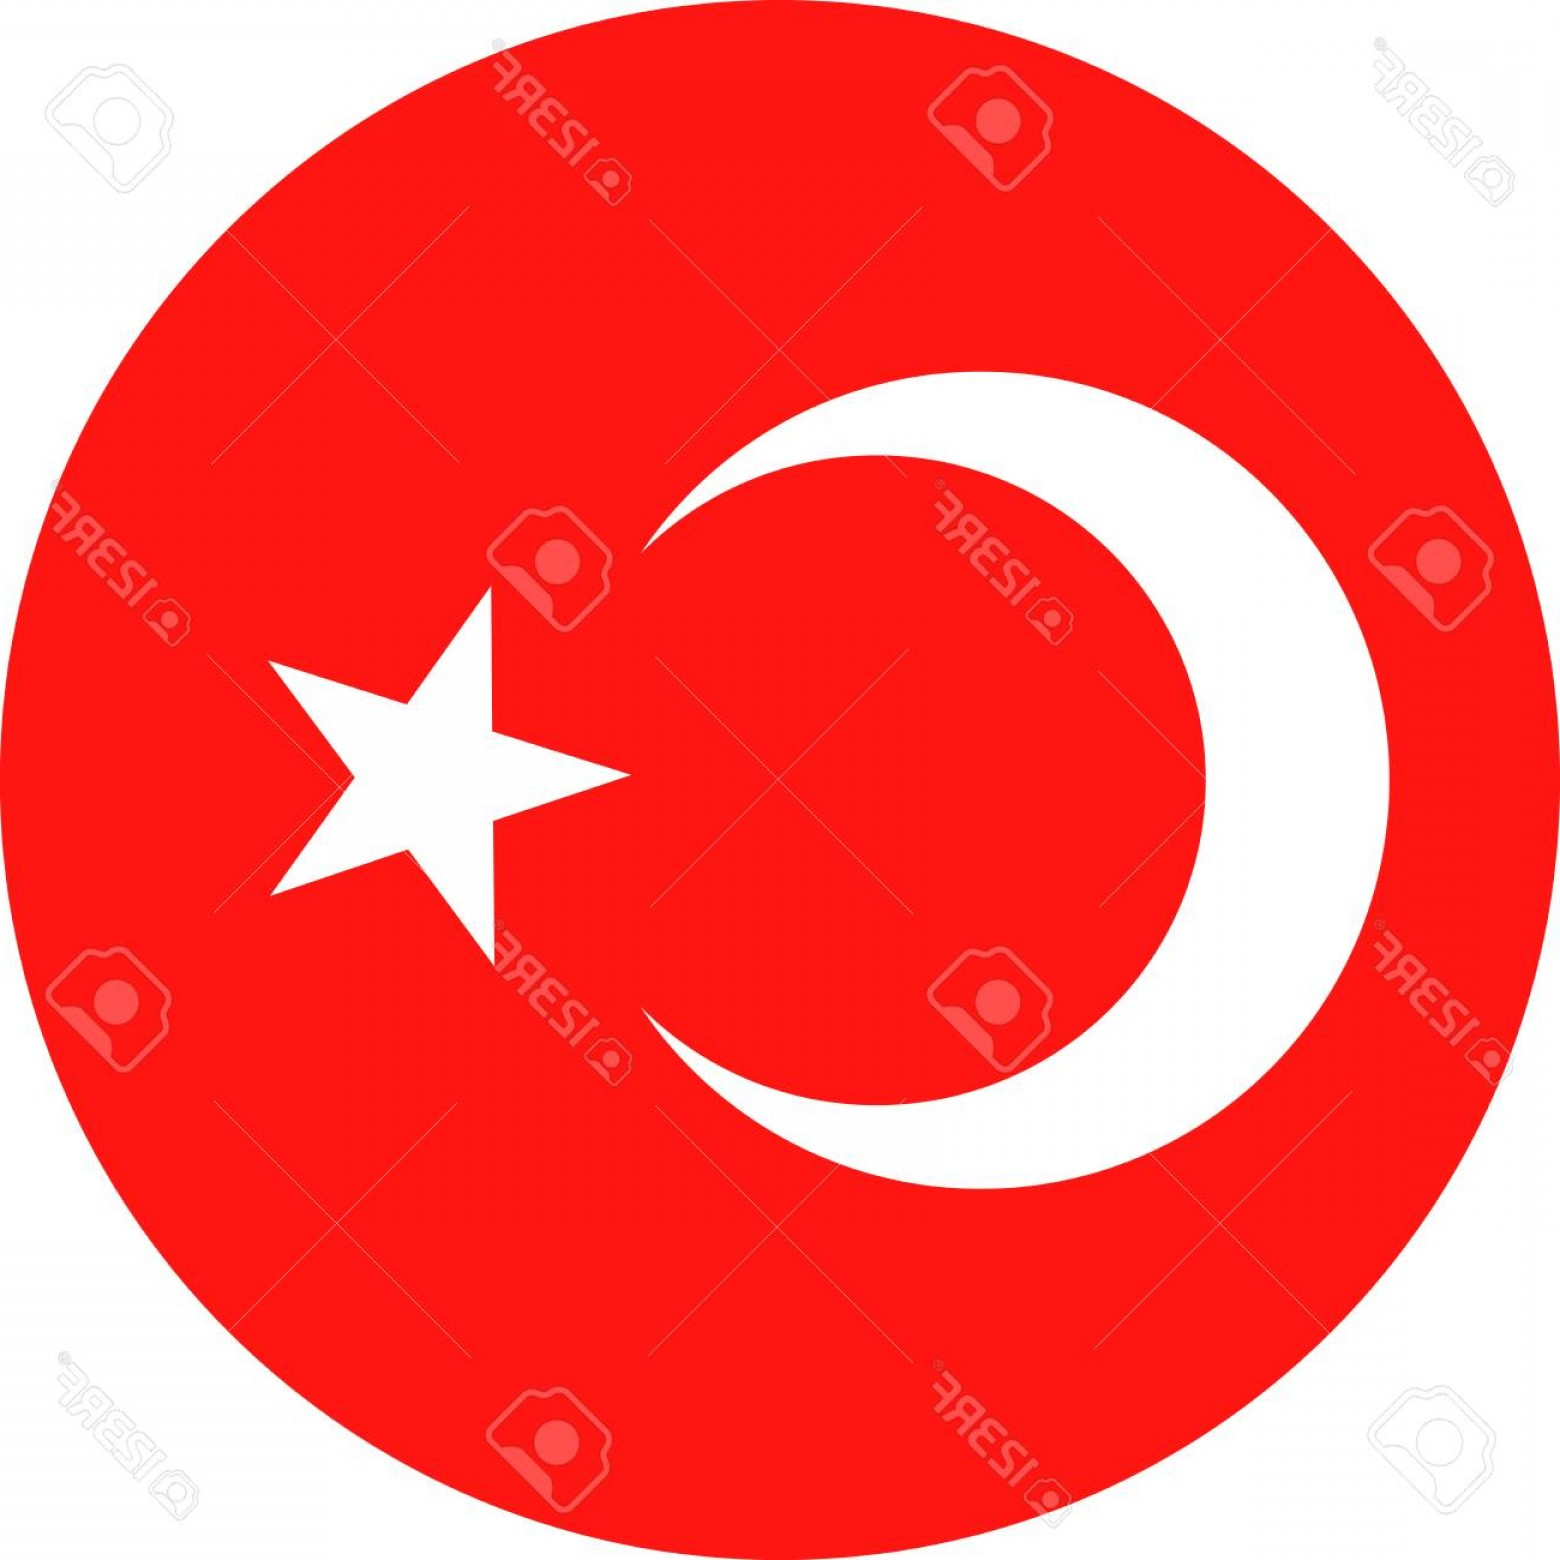 Turkey Logo Vector Art: Photostock Vector Turkey Flag Vector Round Flat Icon Illustration